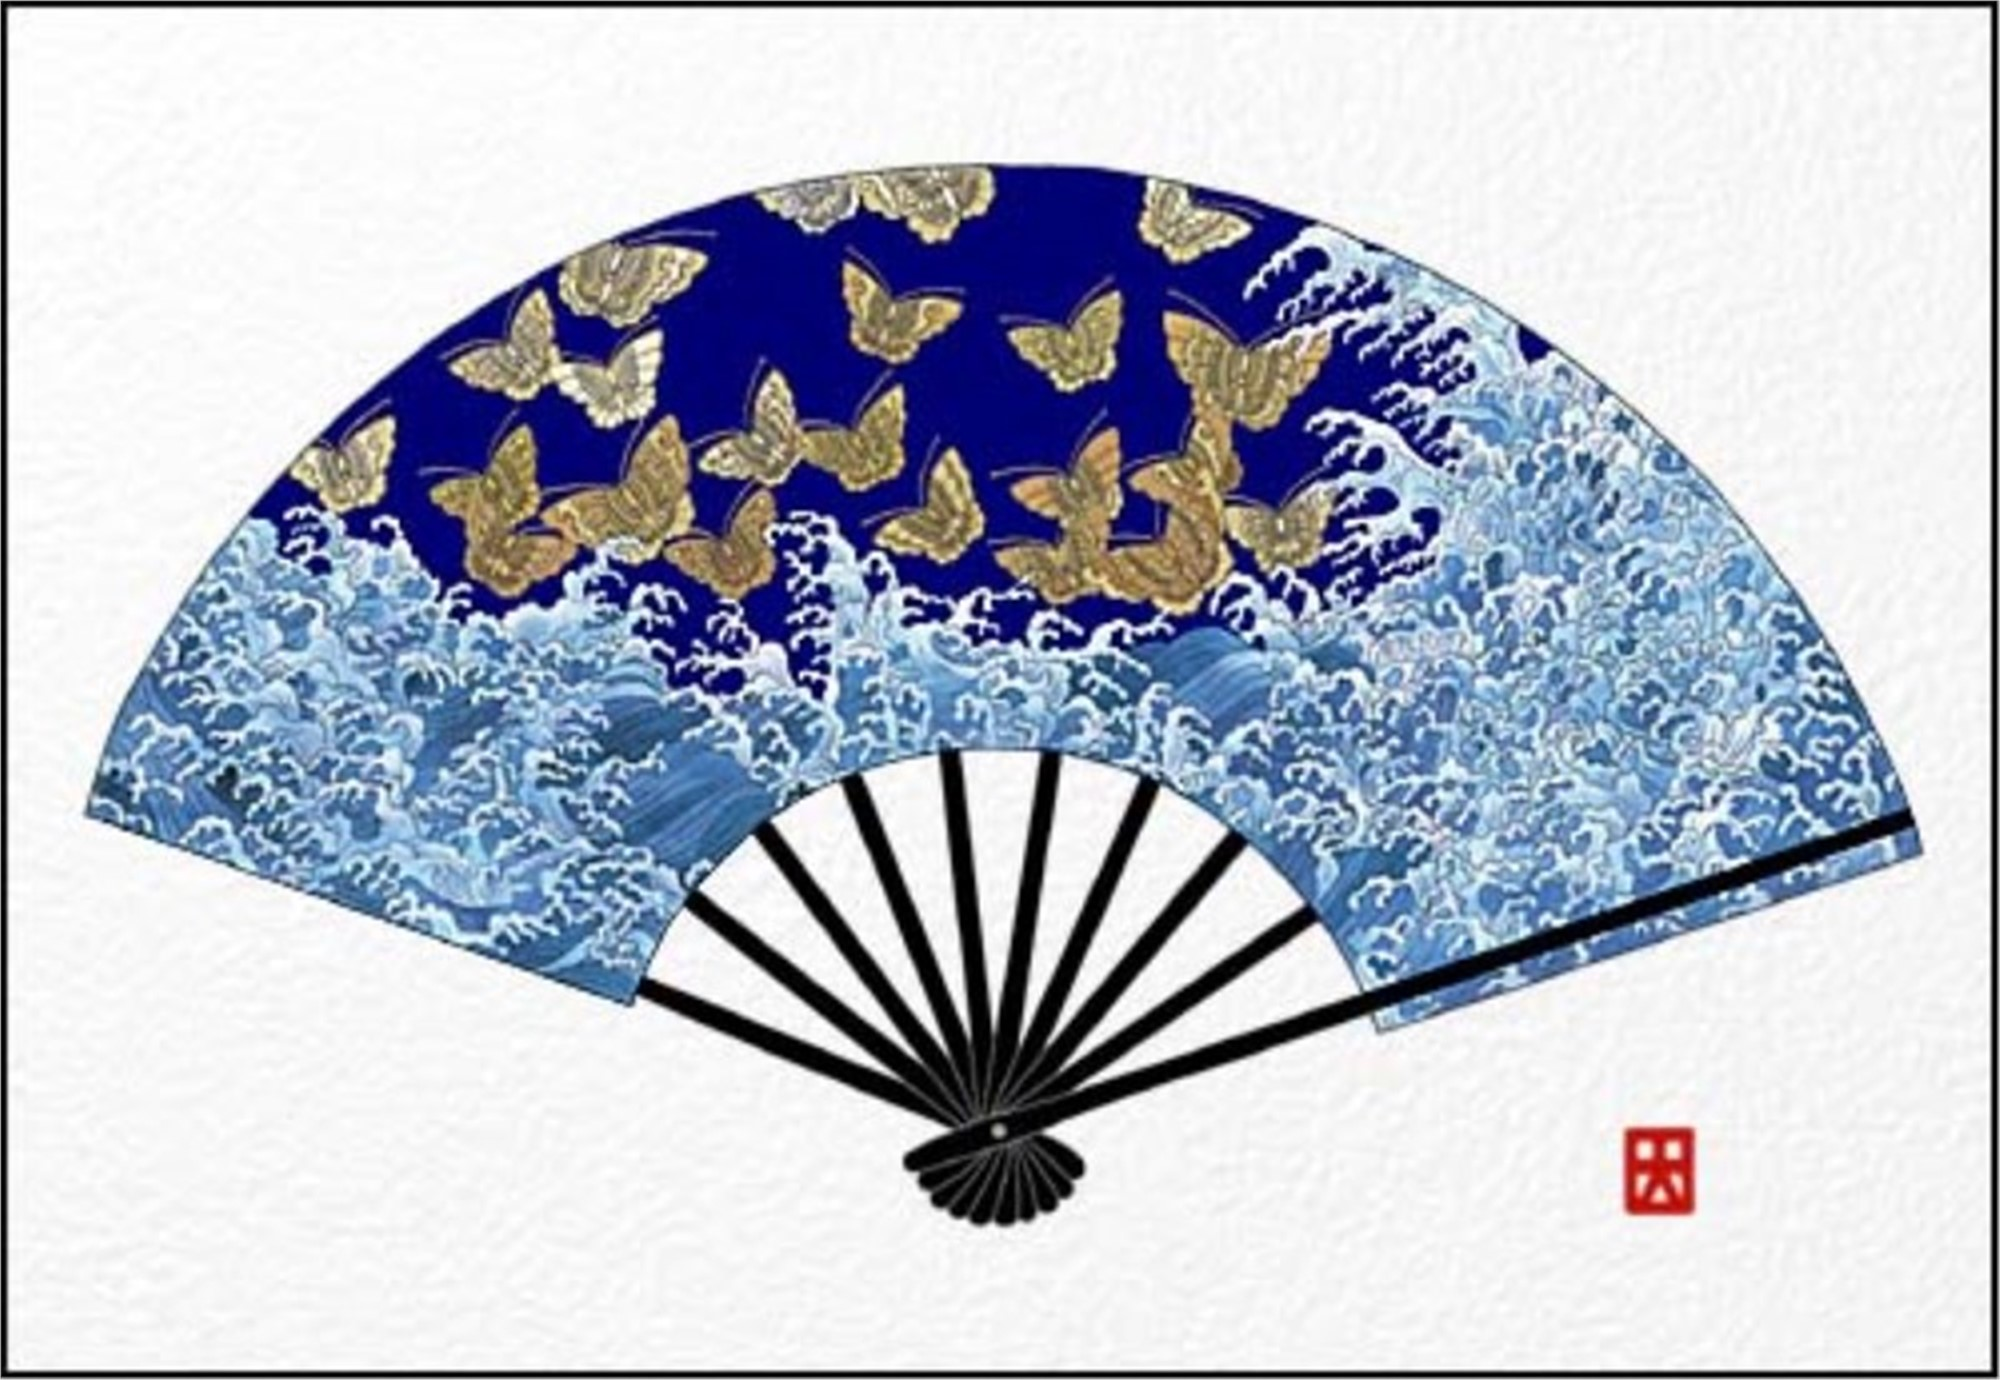 Waves And Butterflies (Fan) by Hisashi Otsuka